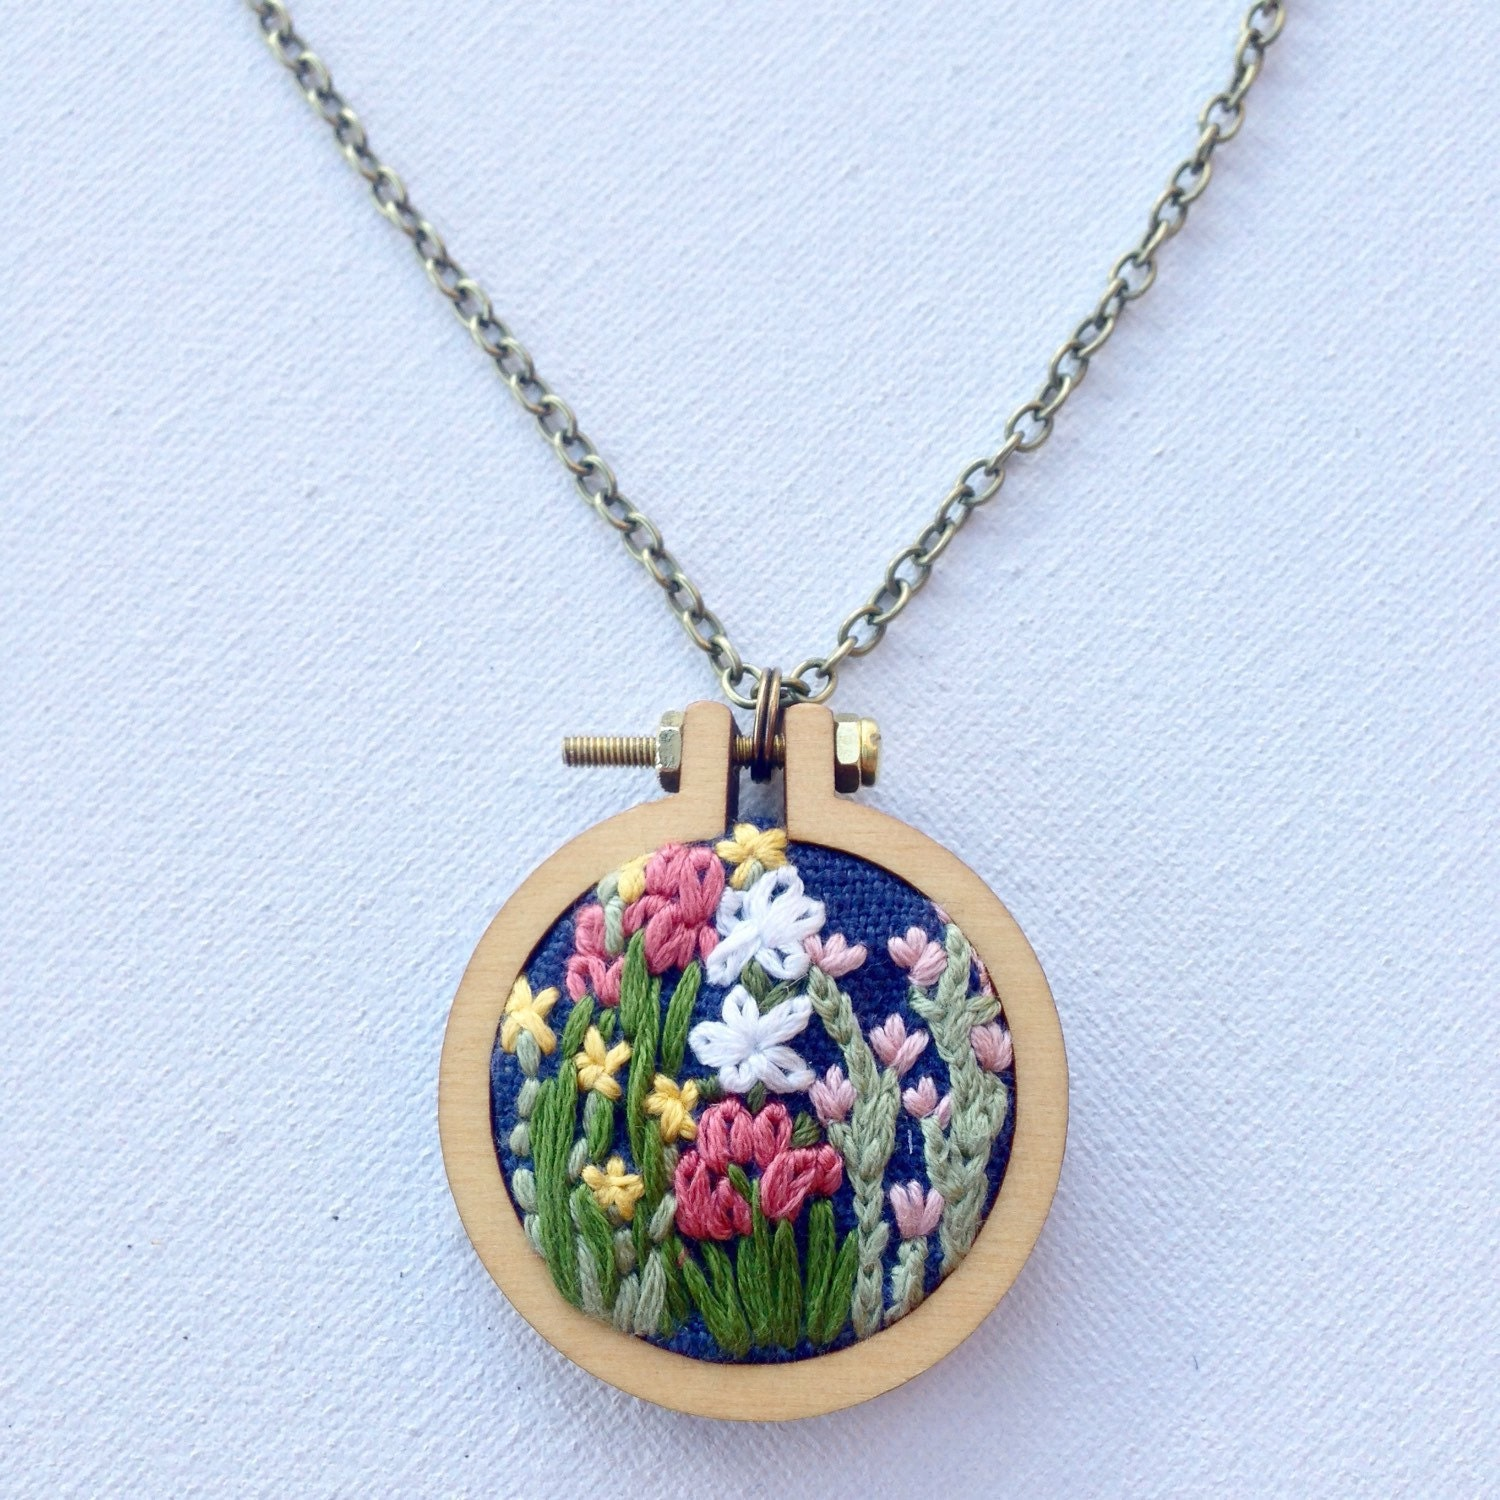 Flower necklace embroidered hand by knottydickens